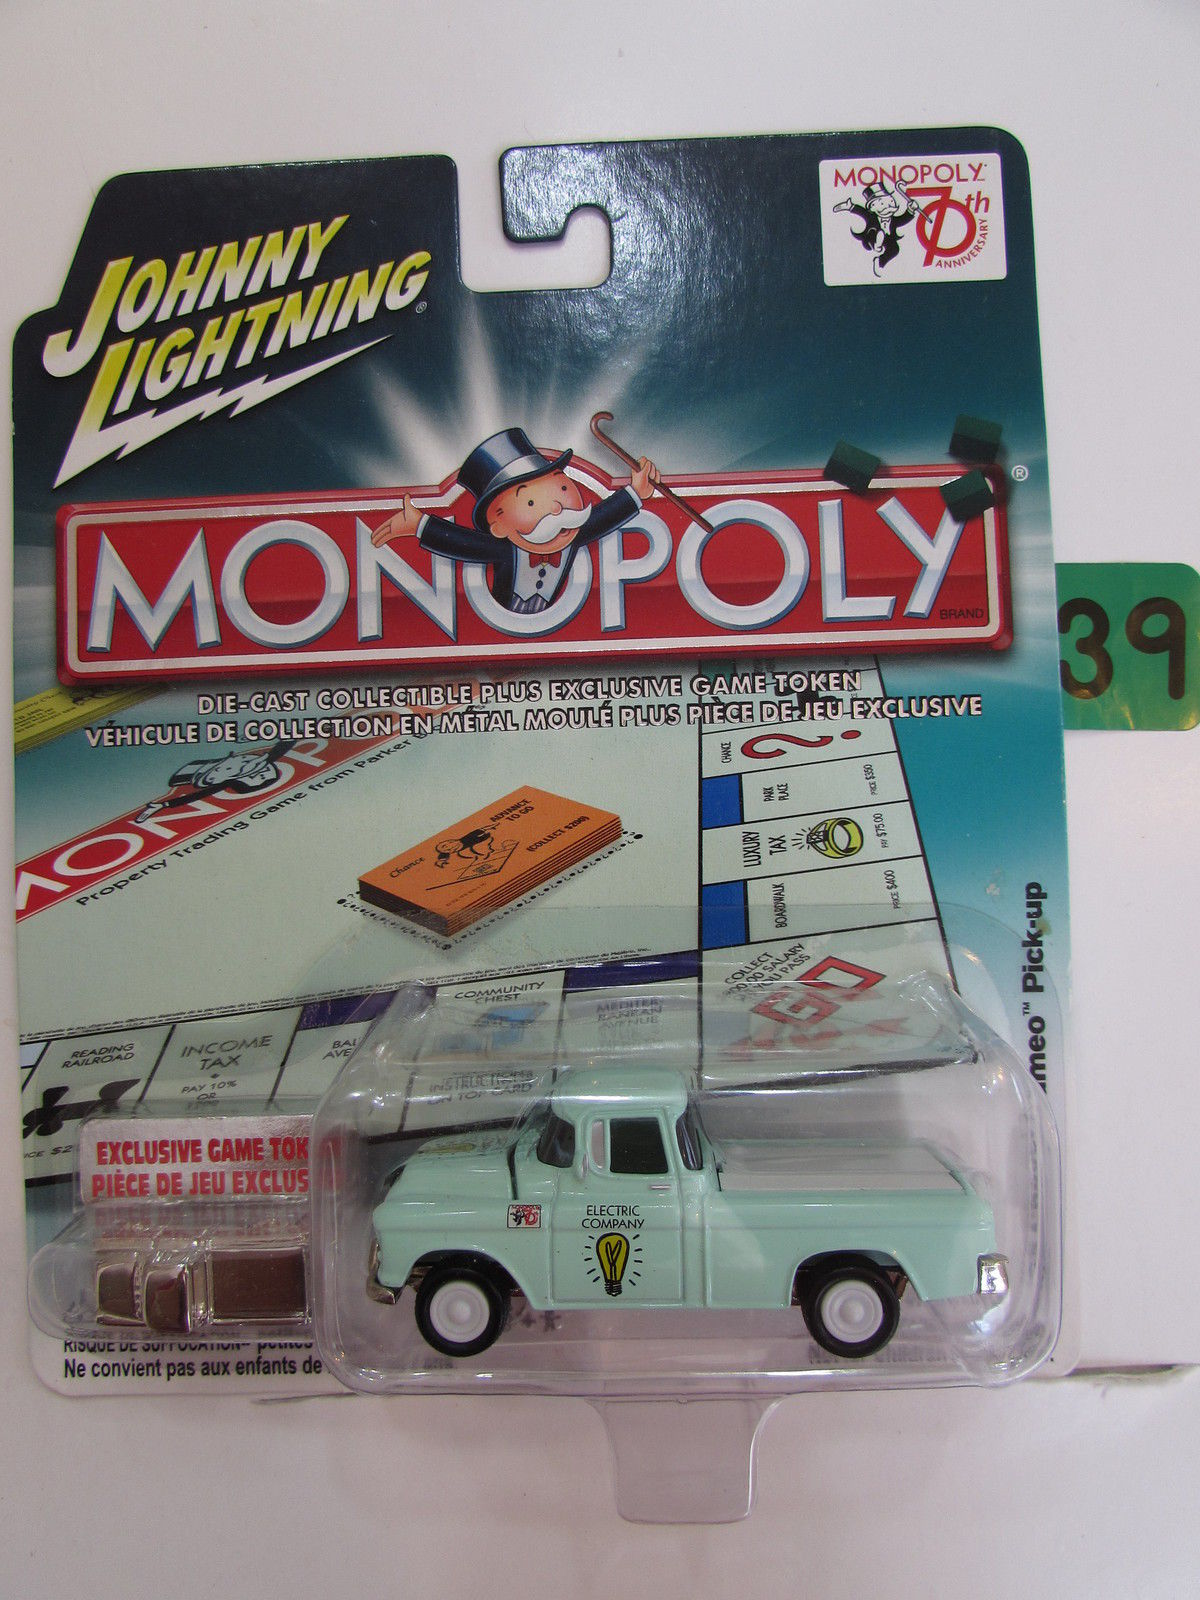 JOHNNY LIGHTNING MONOPOLY - '55 CHEVY CAMEO PICK - UP WHITE LIGHTNING